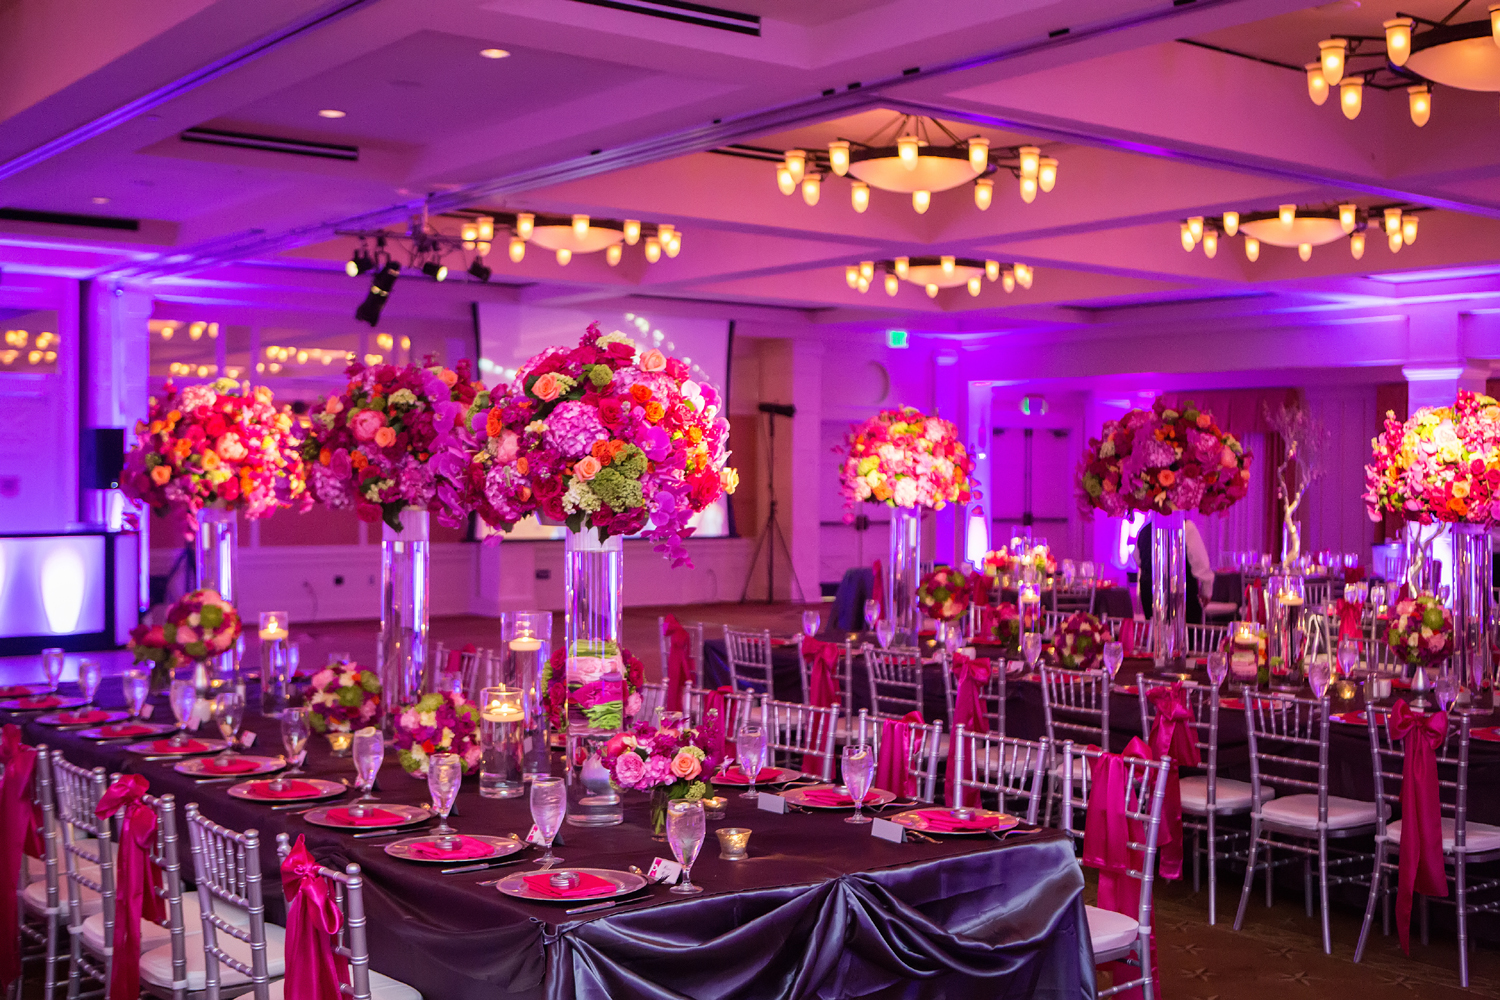 Austin wedding planner event planners corporate event for Event planning ideas parties